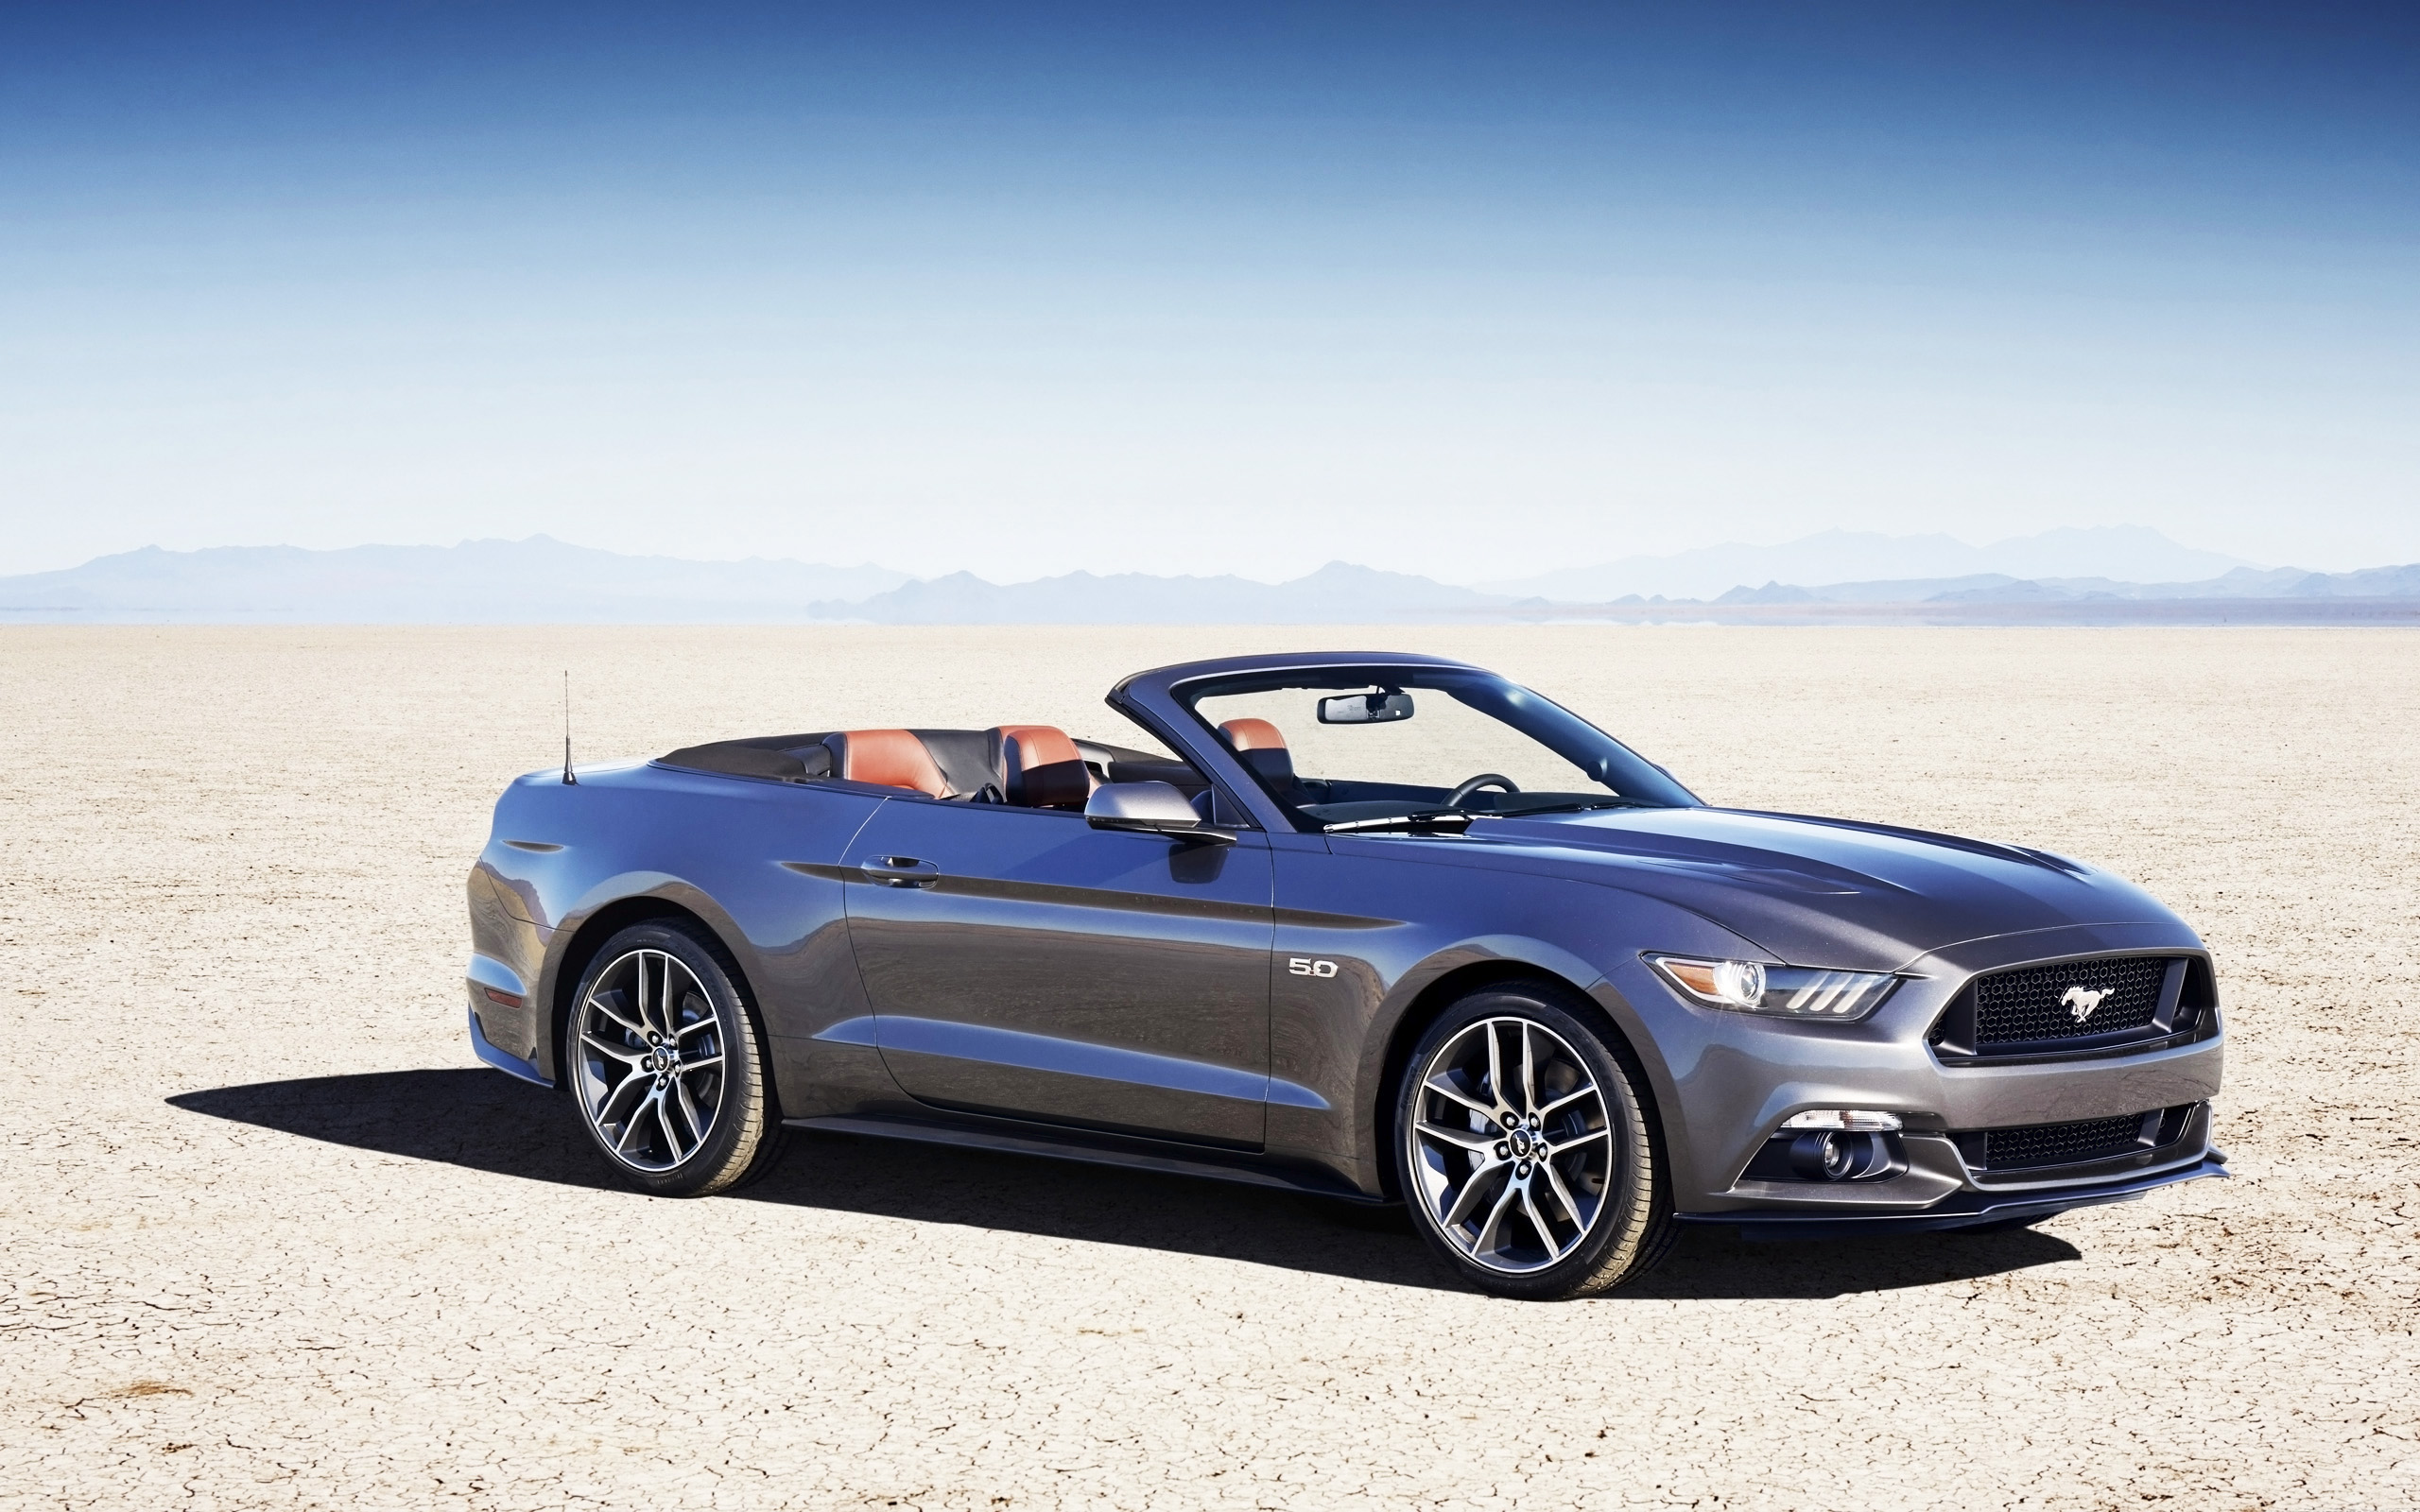 2015 Ford Mustang Convertible Wallpaper